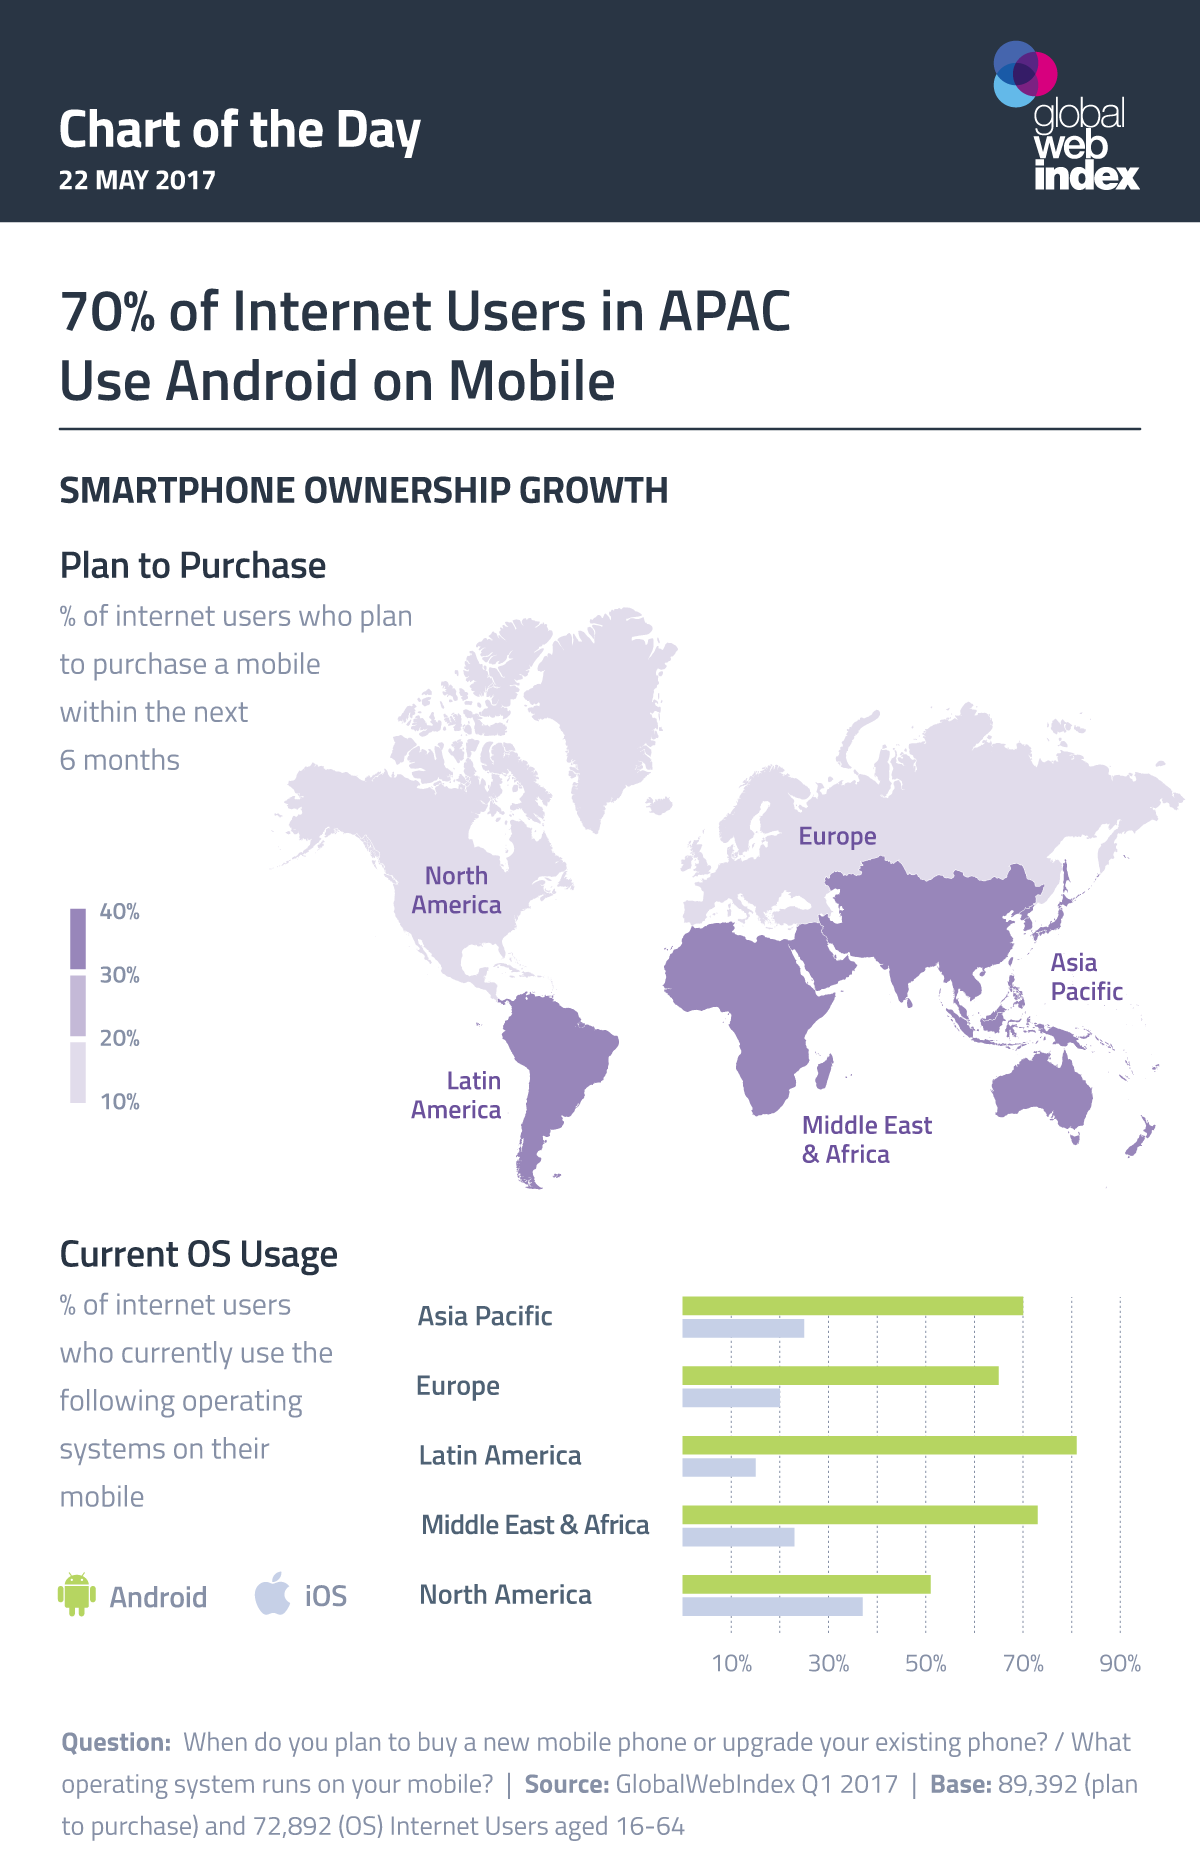 70% of Internet Users in APAC Use Android on Mobile